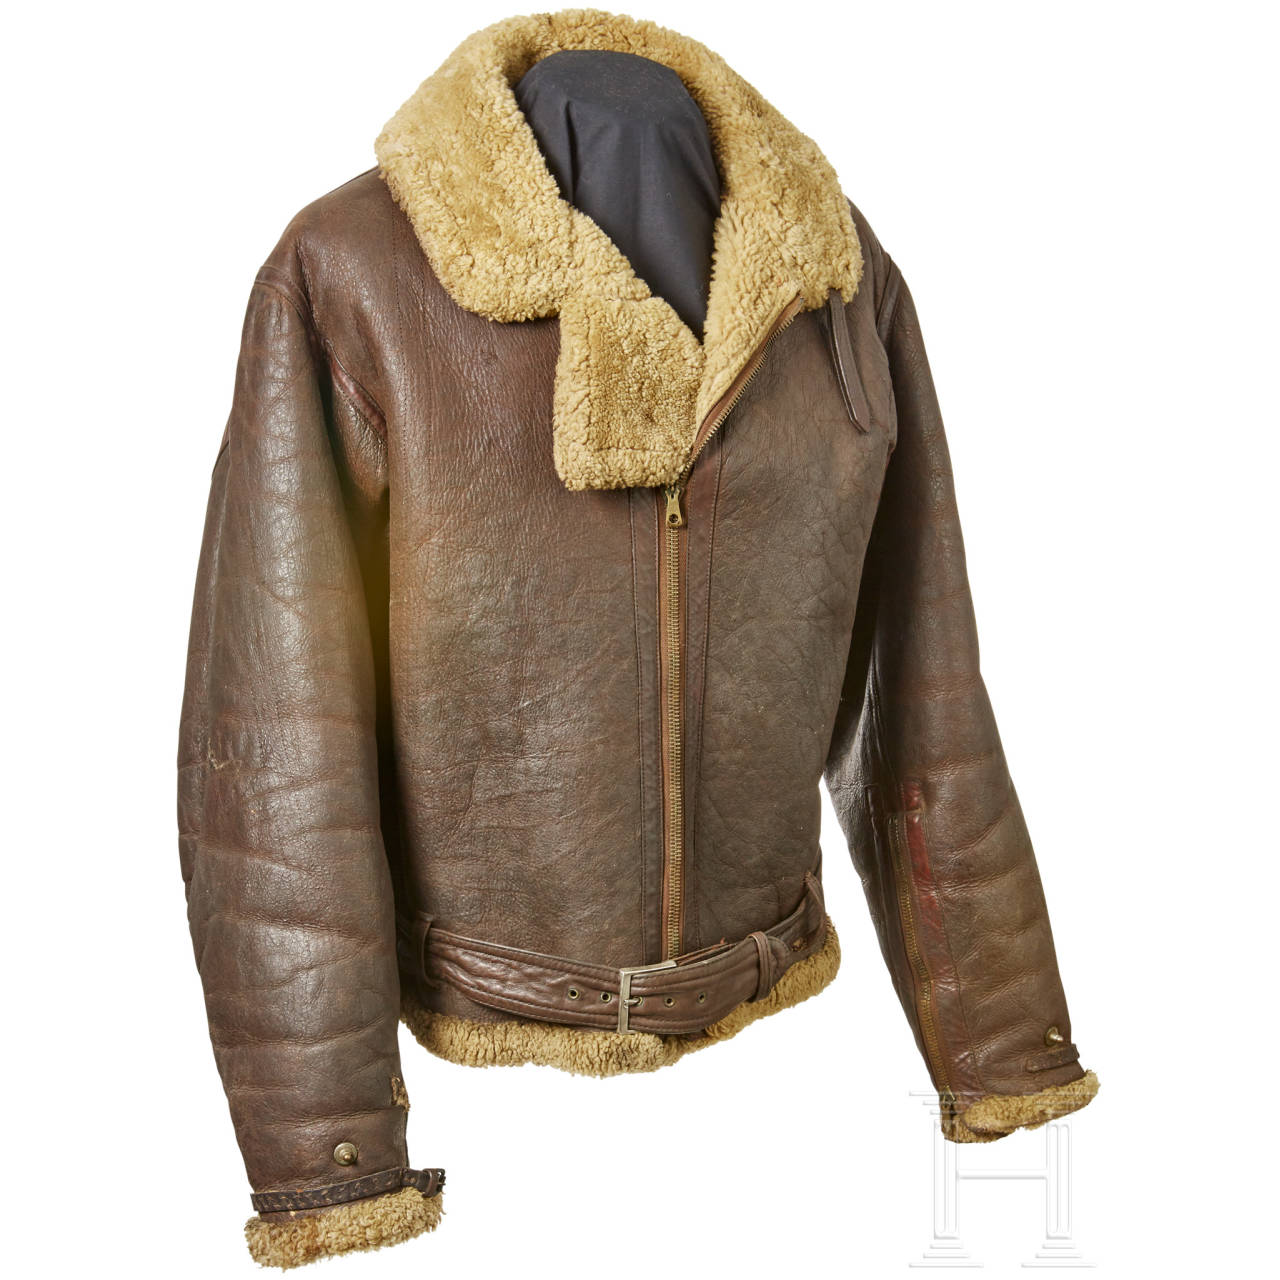 An RAF Flight Jacket for Aviation Personnel